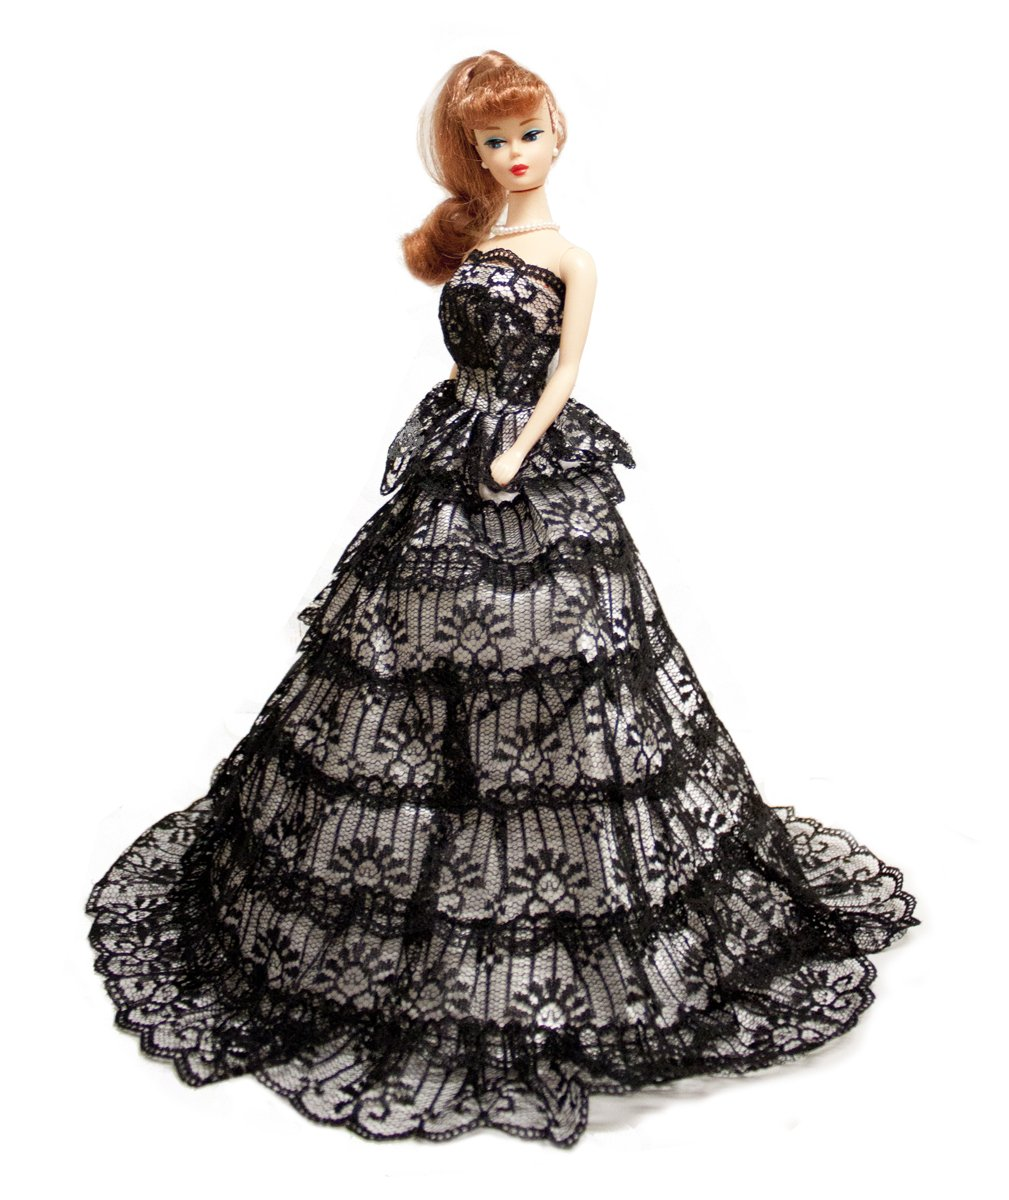 Barbie Black & White Gown with Ruffles Ball Gown, Barbie Wedding Gown